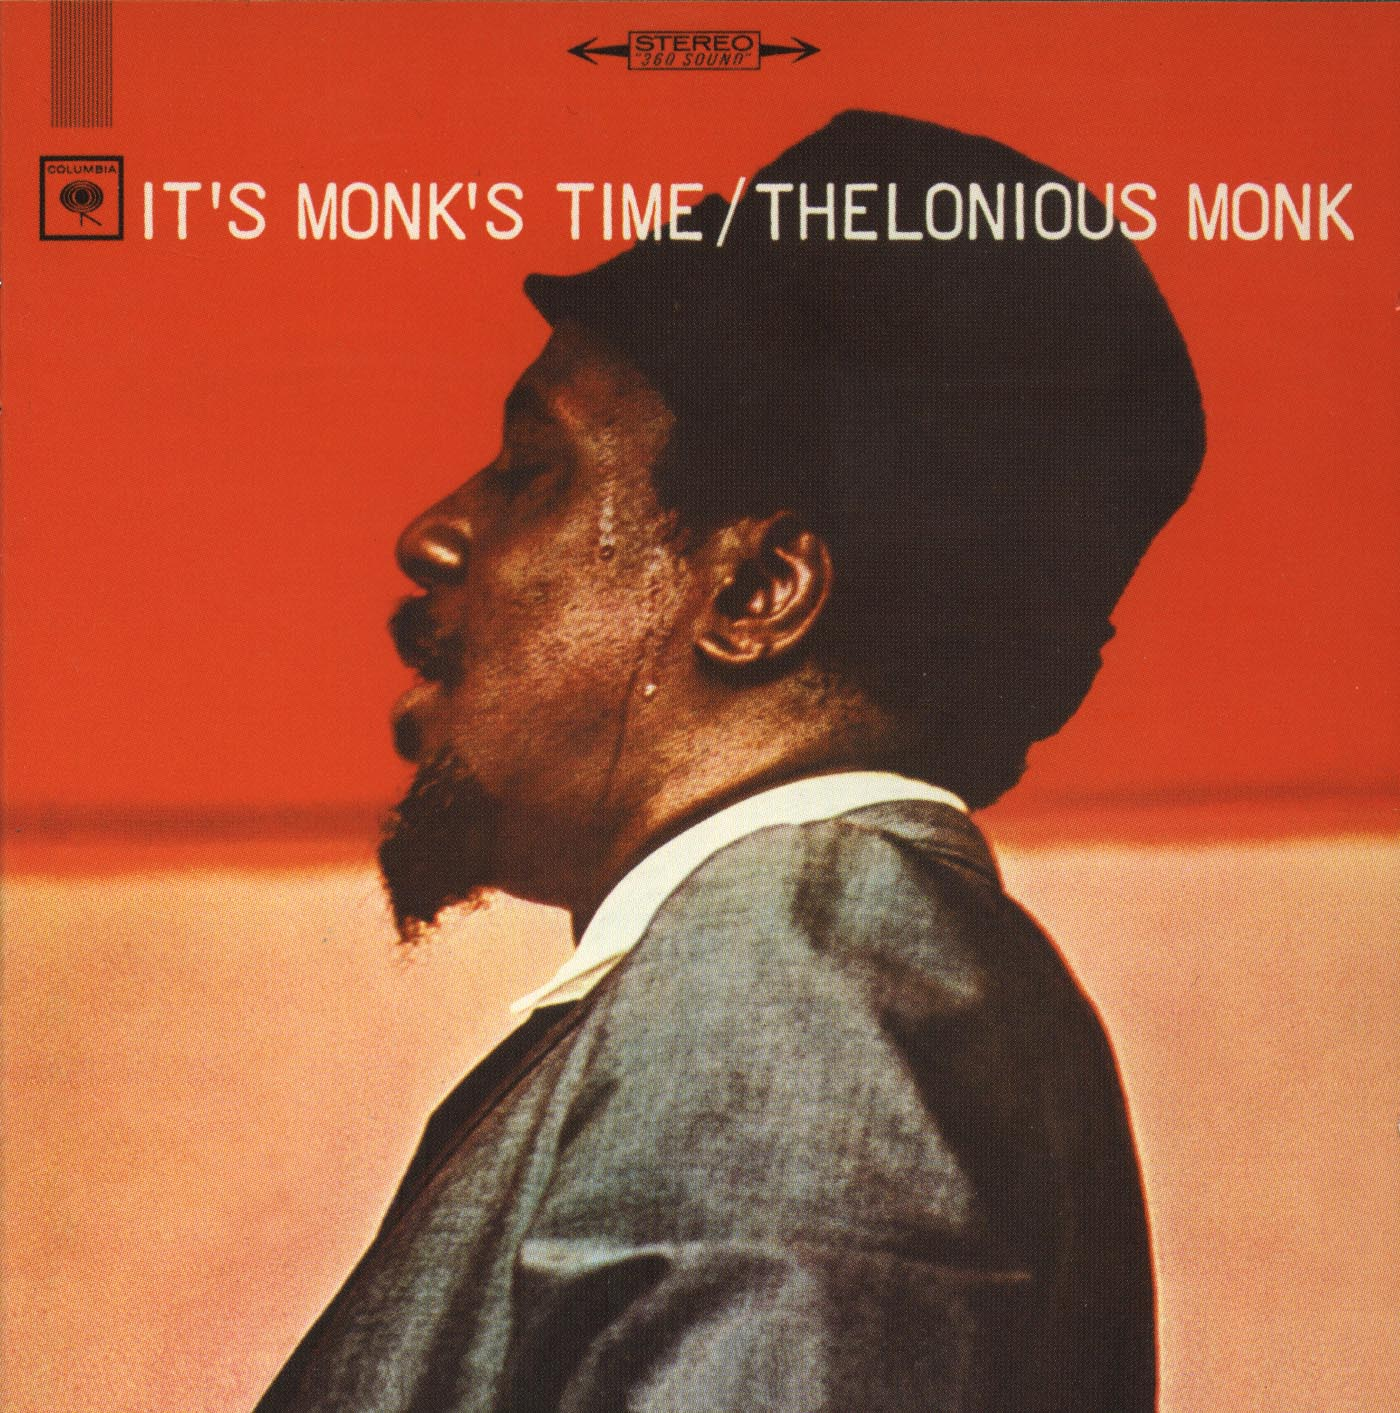 thelonious monk - it's monk's time (1964)